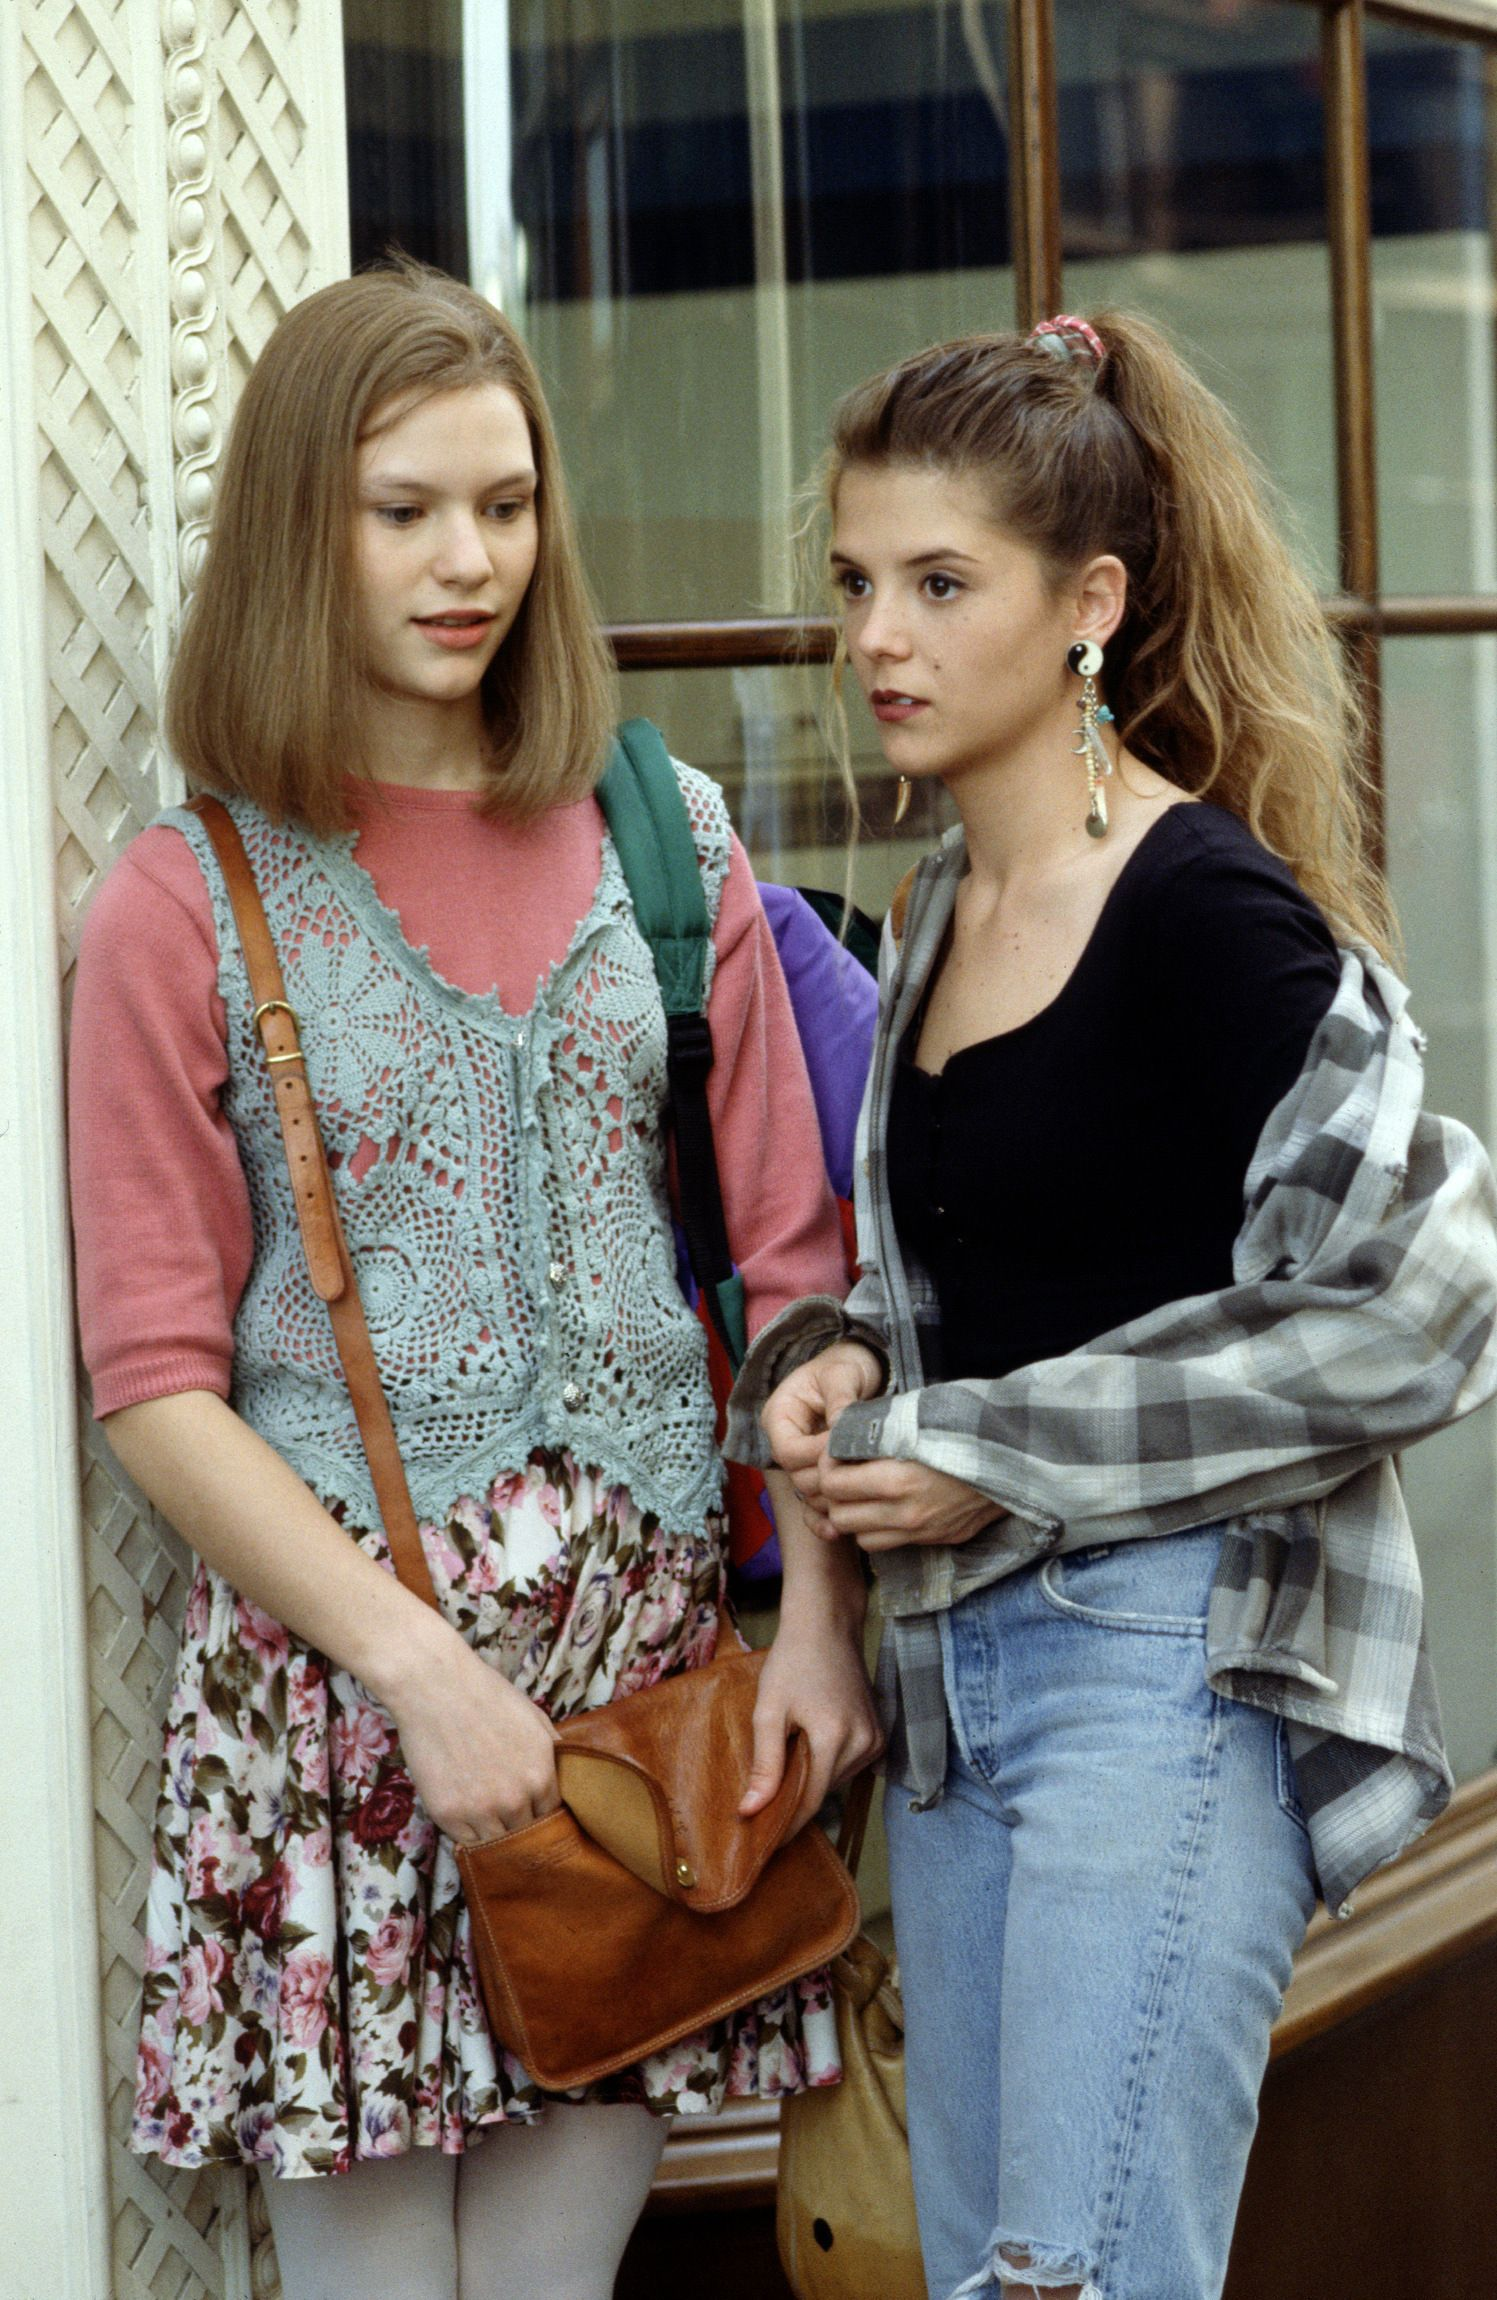 Top fashion trends of the 90s - 1990s